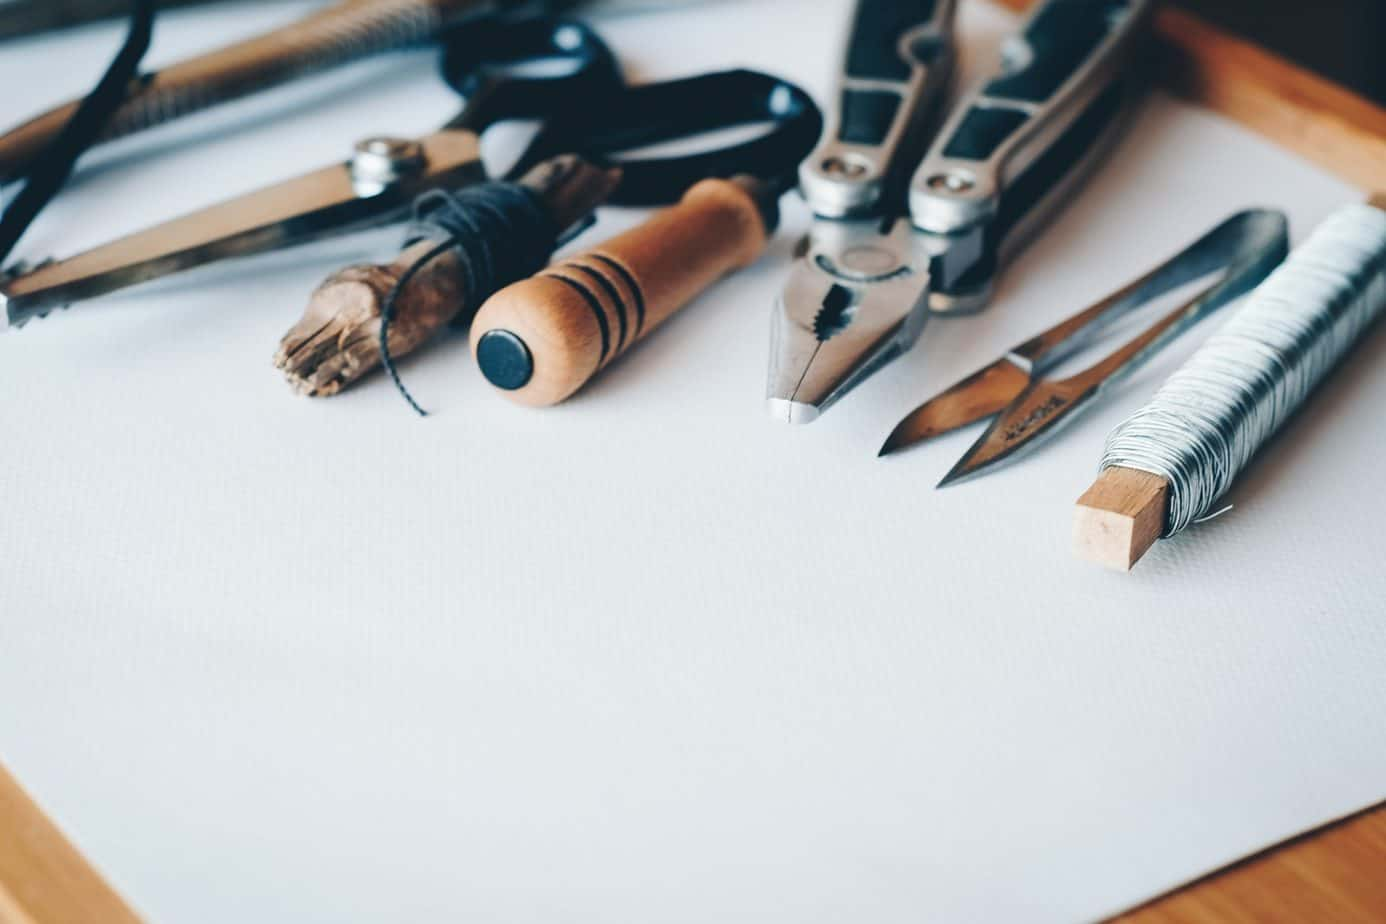 10 Skills to Master Before Launching a New Business